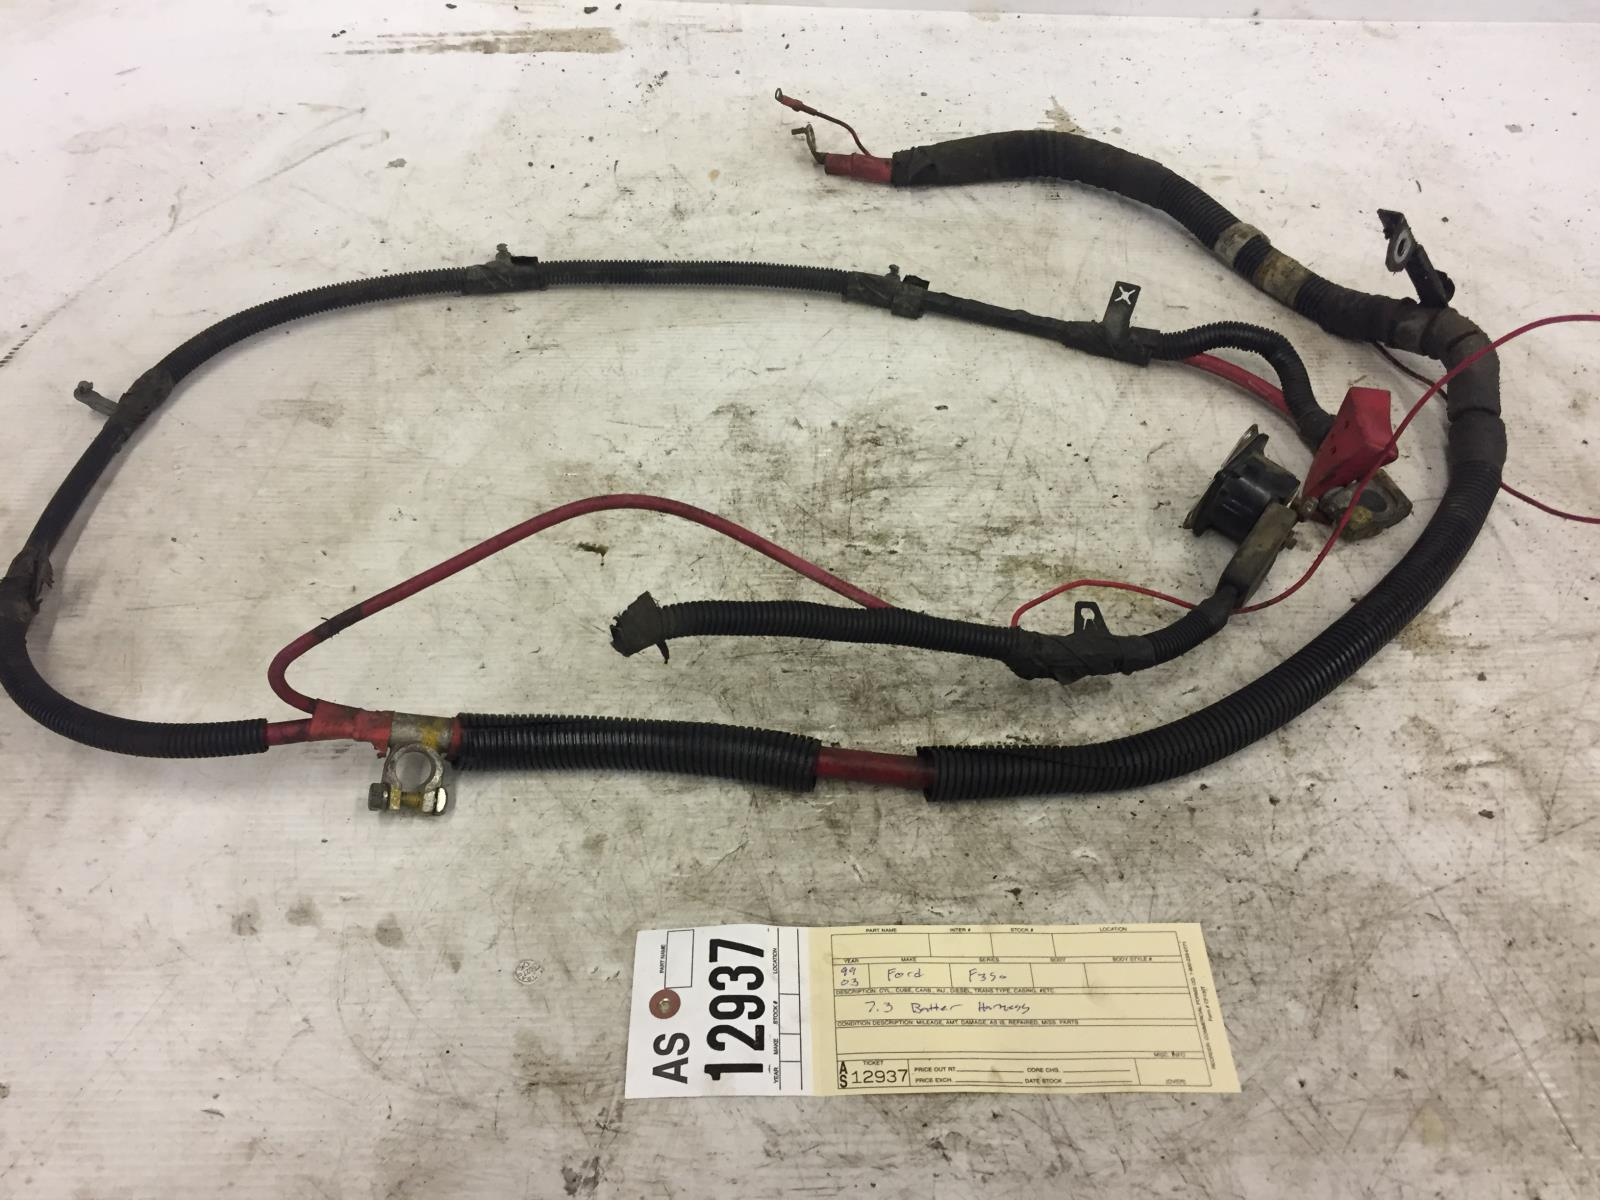 Details About 1999 2003 Ford F350 F250 73l Powerstroke Battery Cable Wiring Harness As12937 7 3